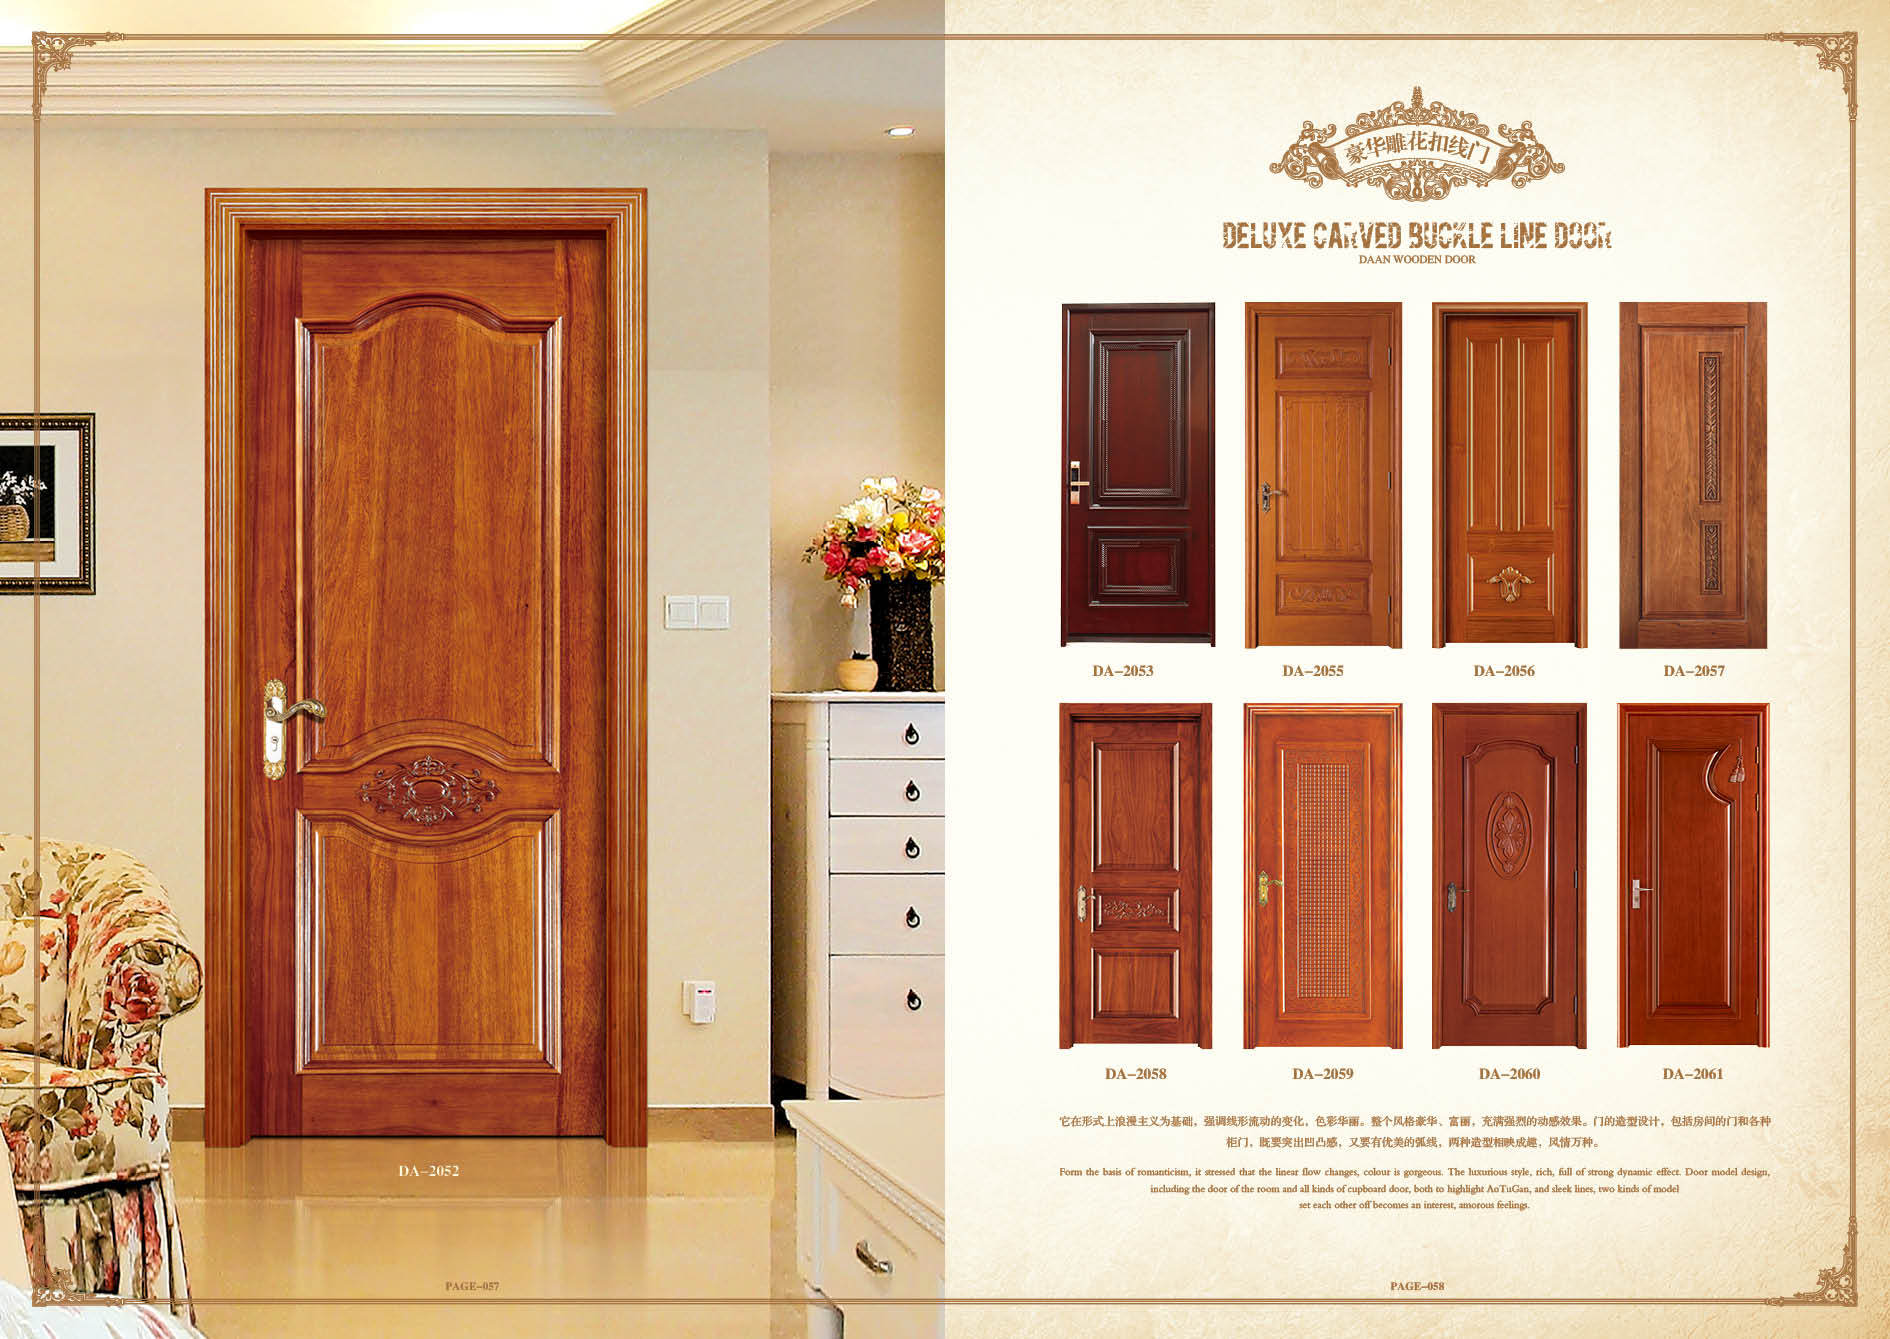 wooden main door designs kerala style  | Main Door with Carving Designs